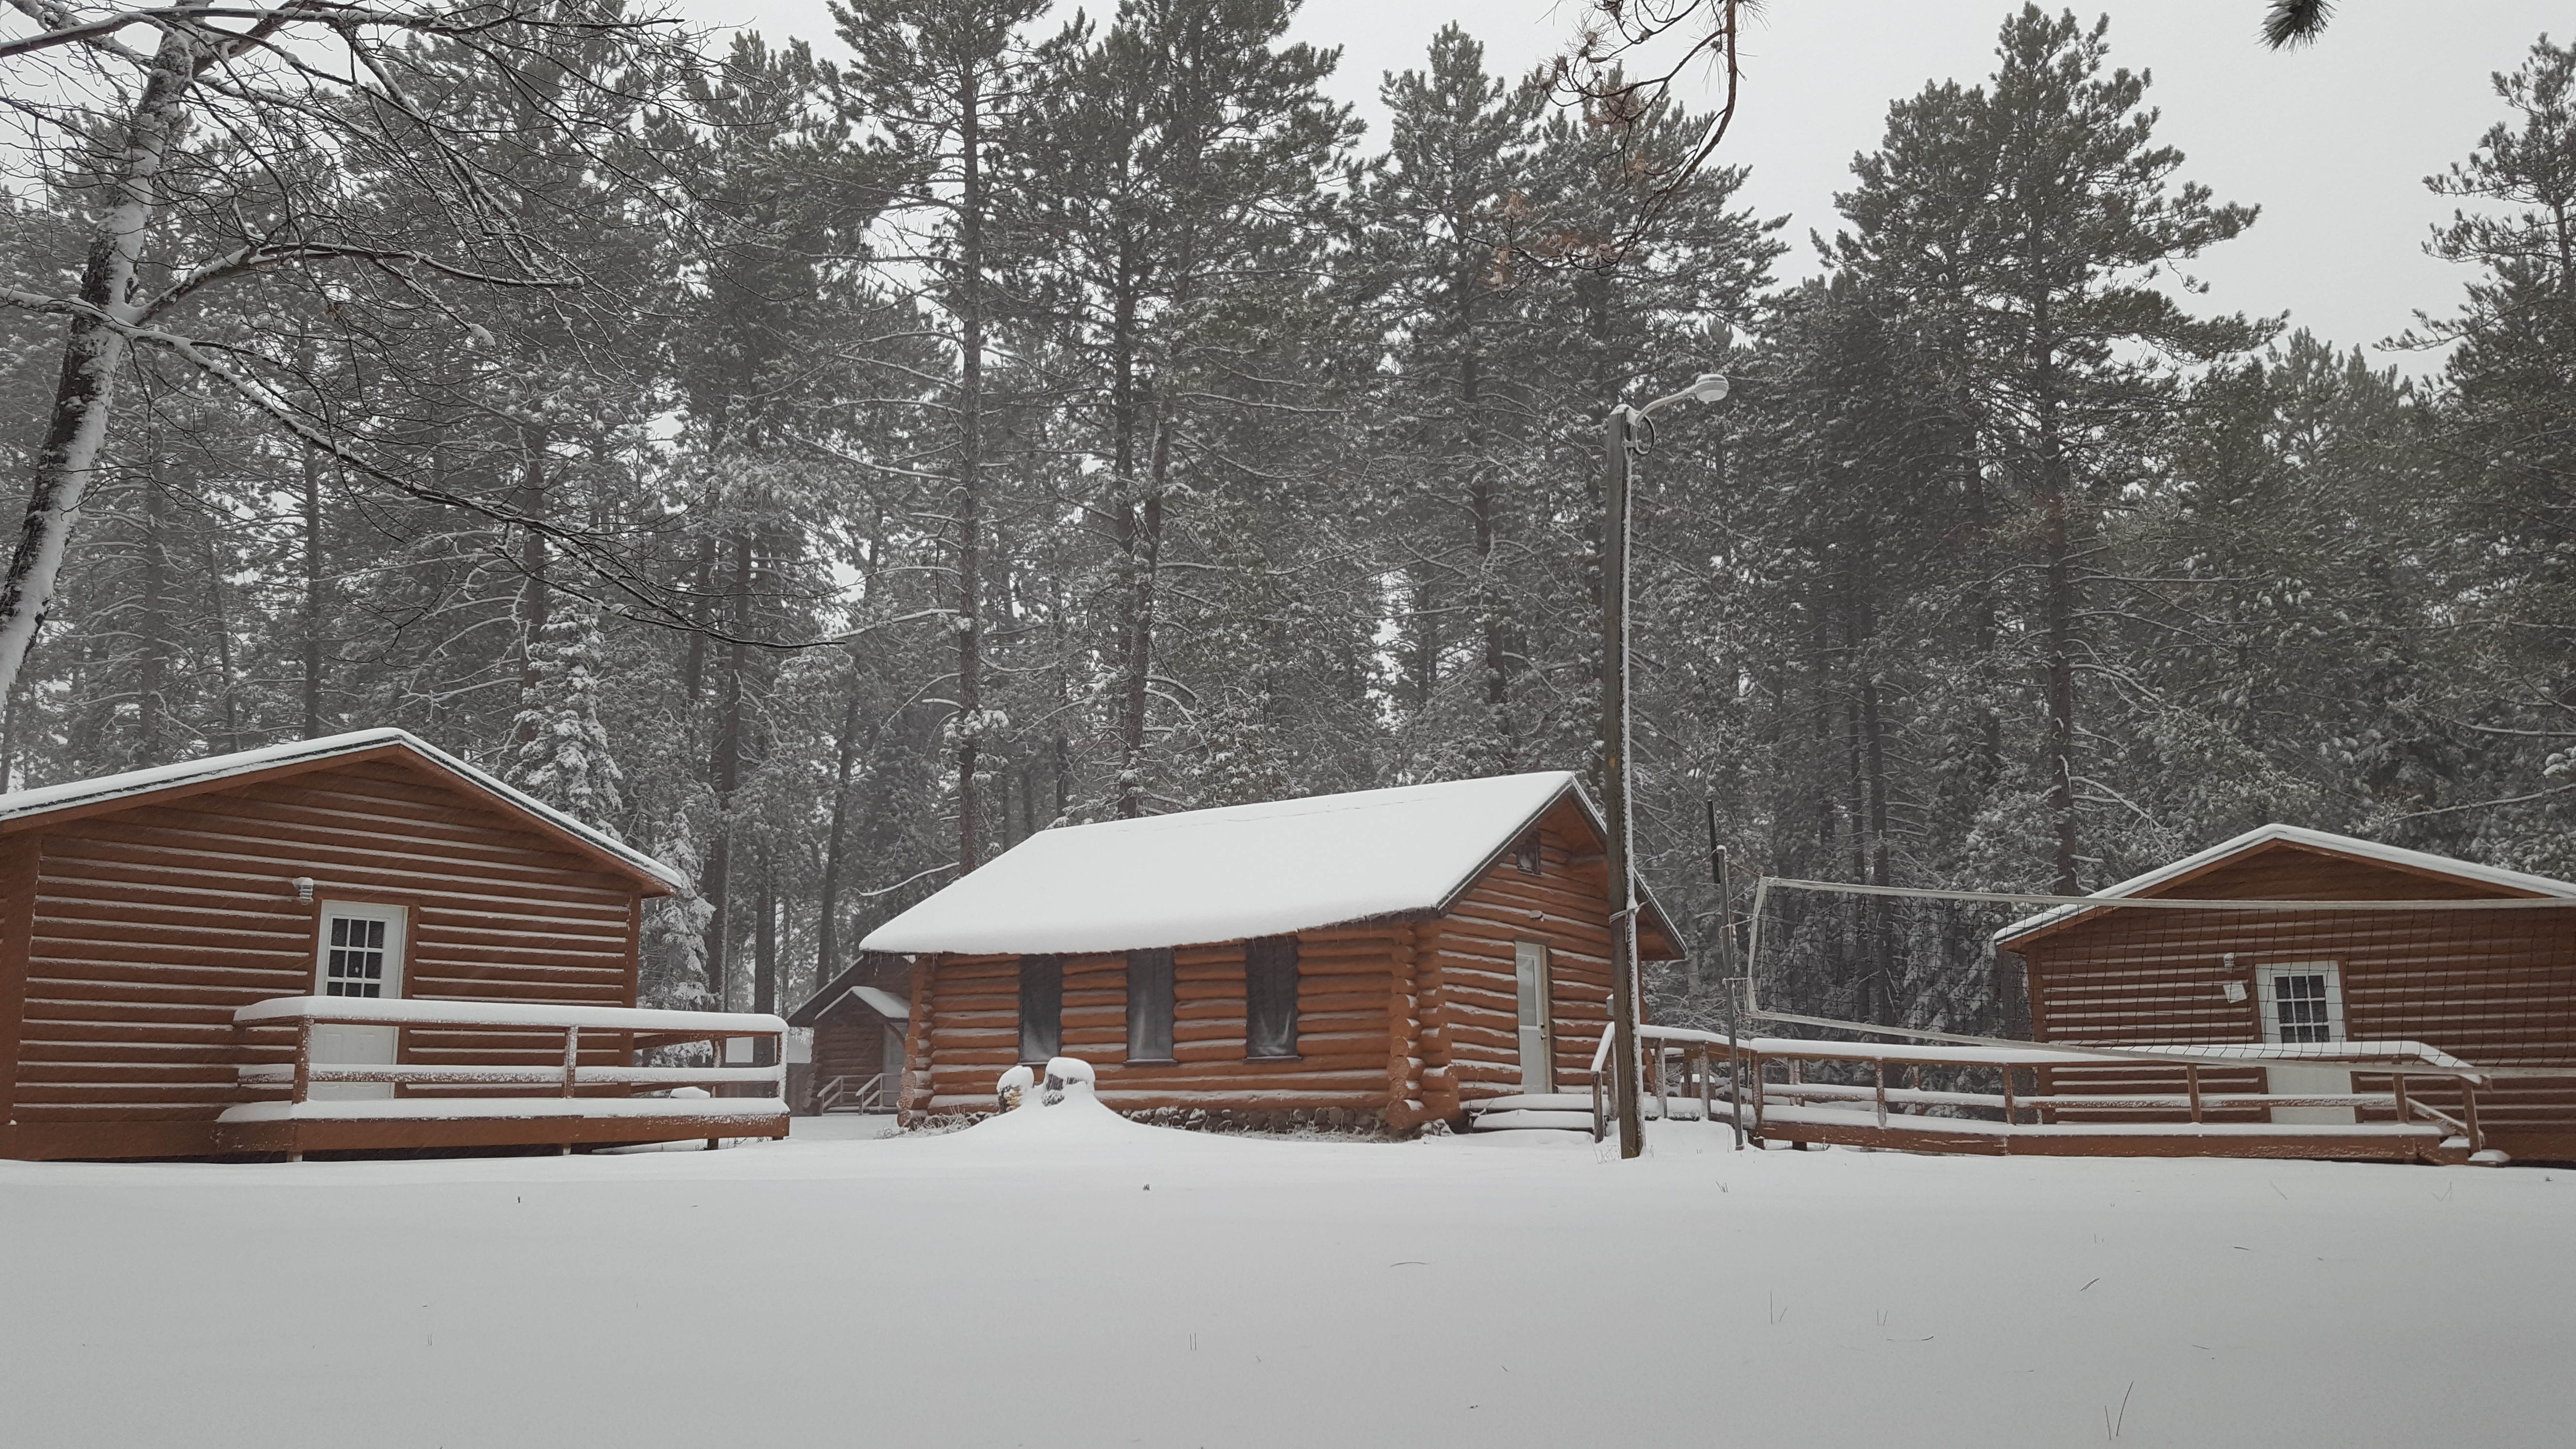 in december perfect for family destination this rentals greer img fun arizona holiday the us old winter cabins fashioned cabin join